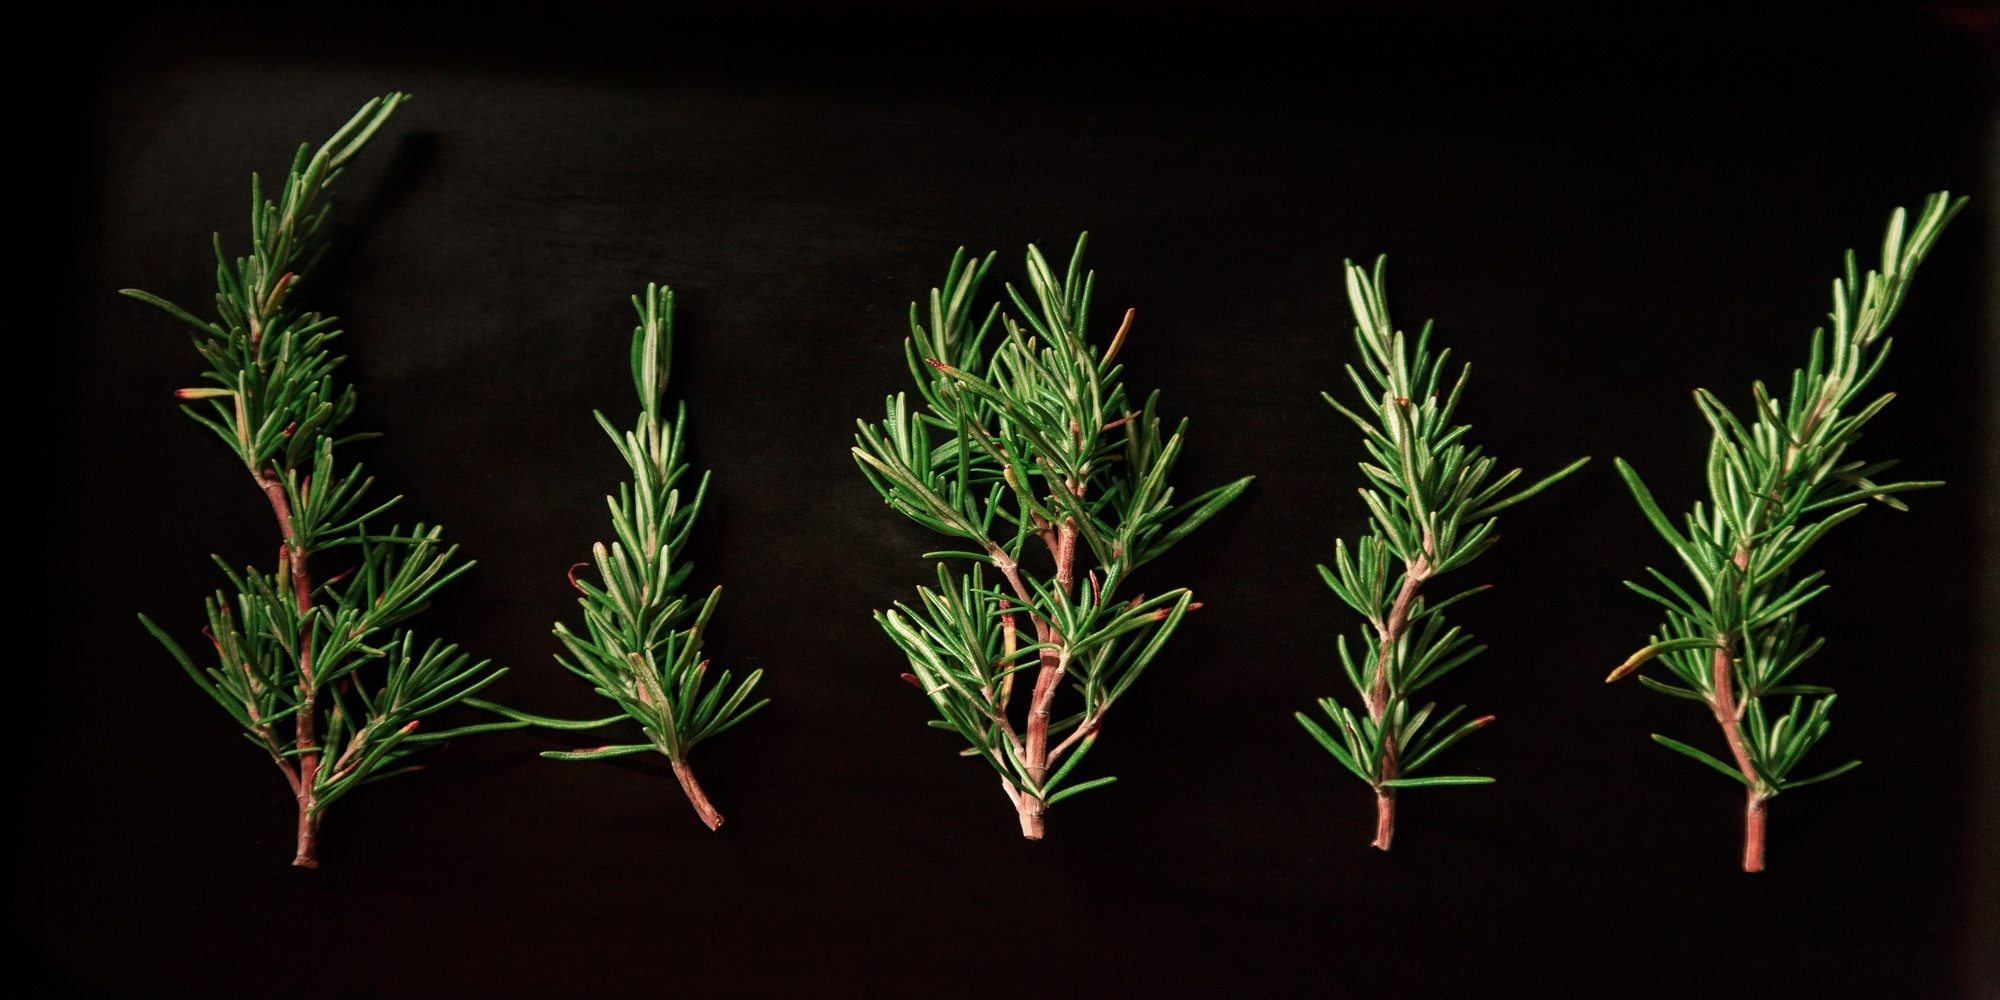 5 sprigs of rosemary behind black background